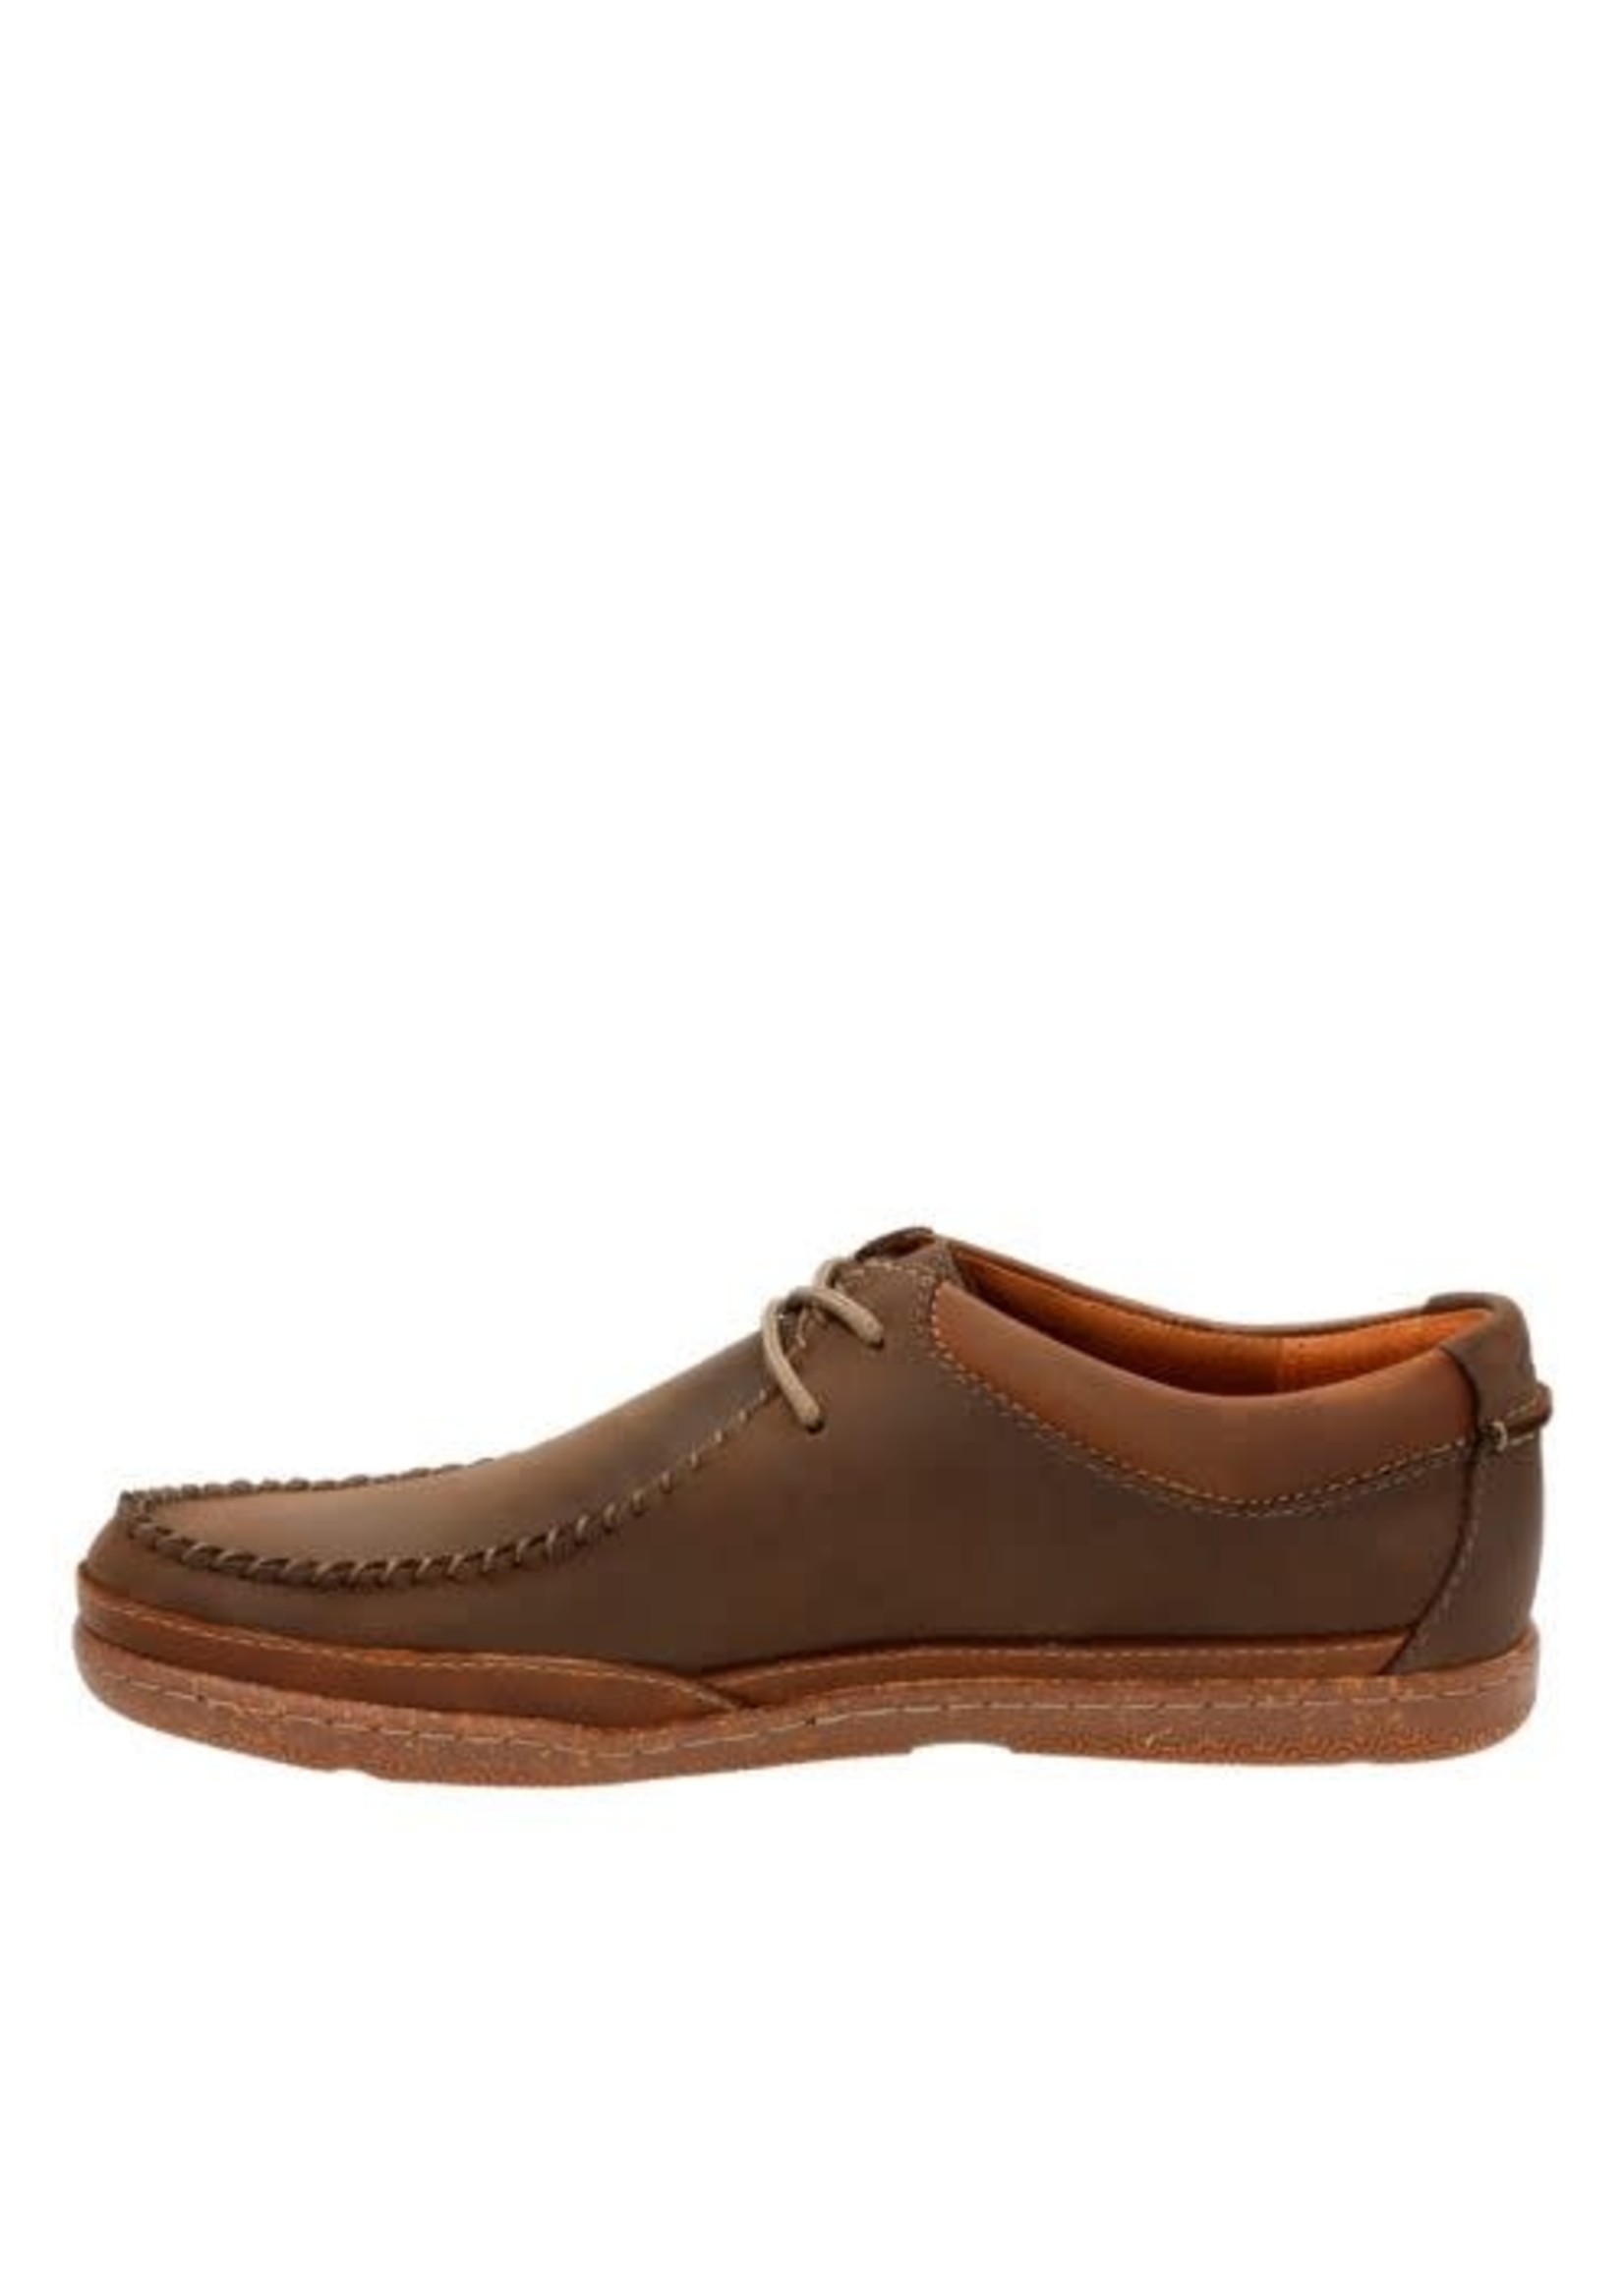 CLARKS CLARKS- TRAPPEL PACE- DARK BROWN LEATHER